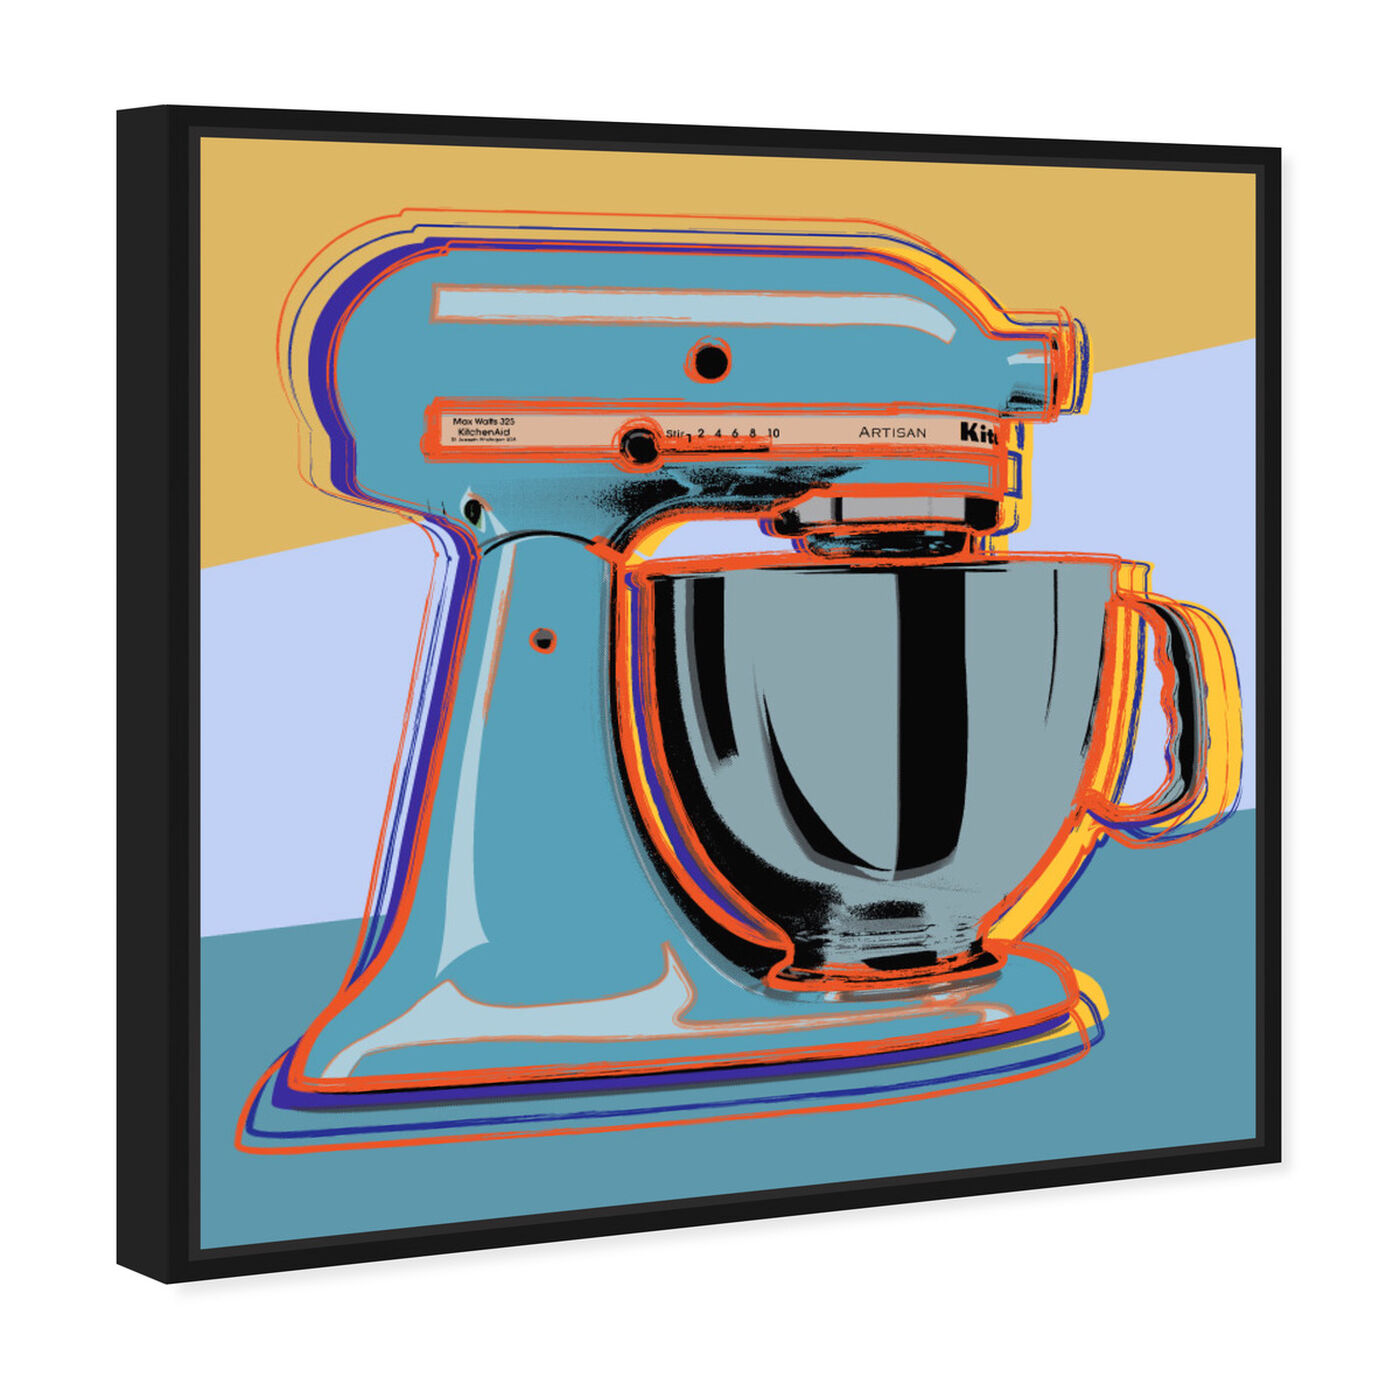 Angled view of Classic Blender featuring food and cuisine and baking essentials art.